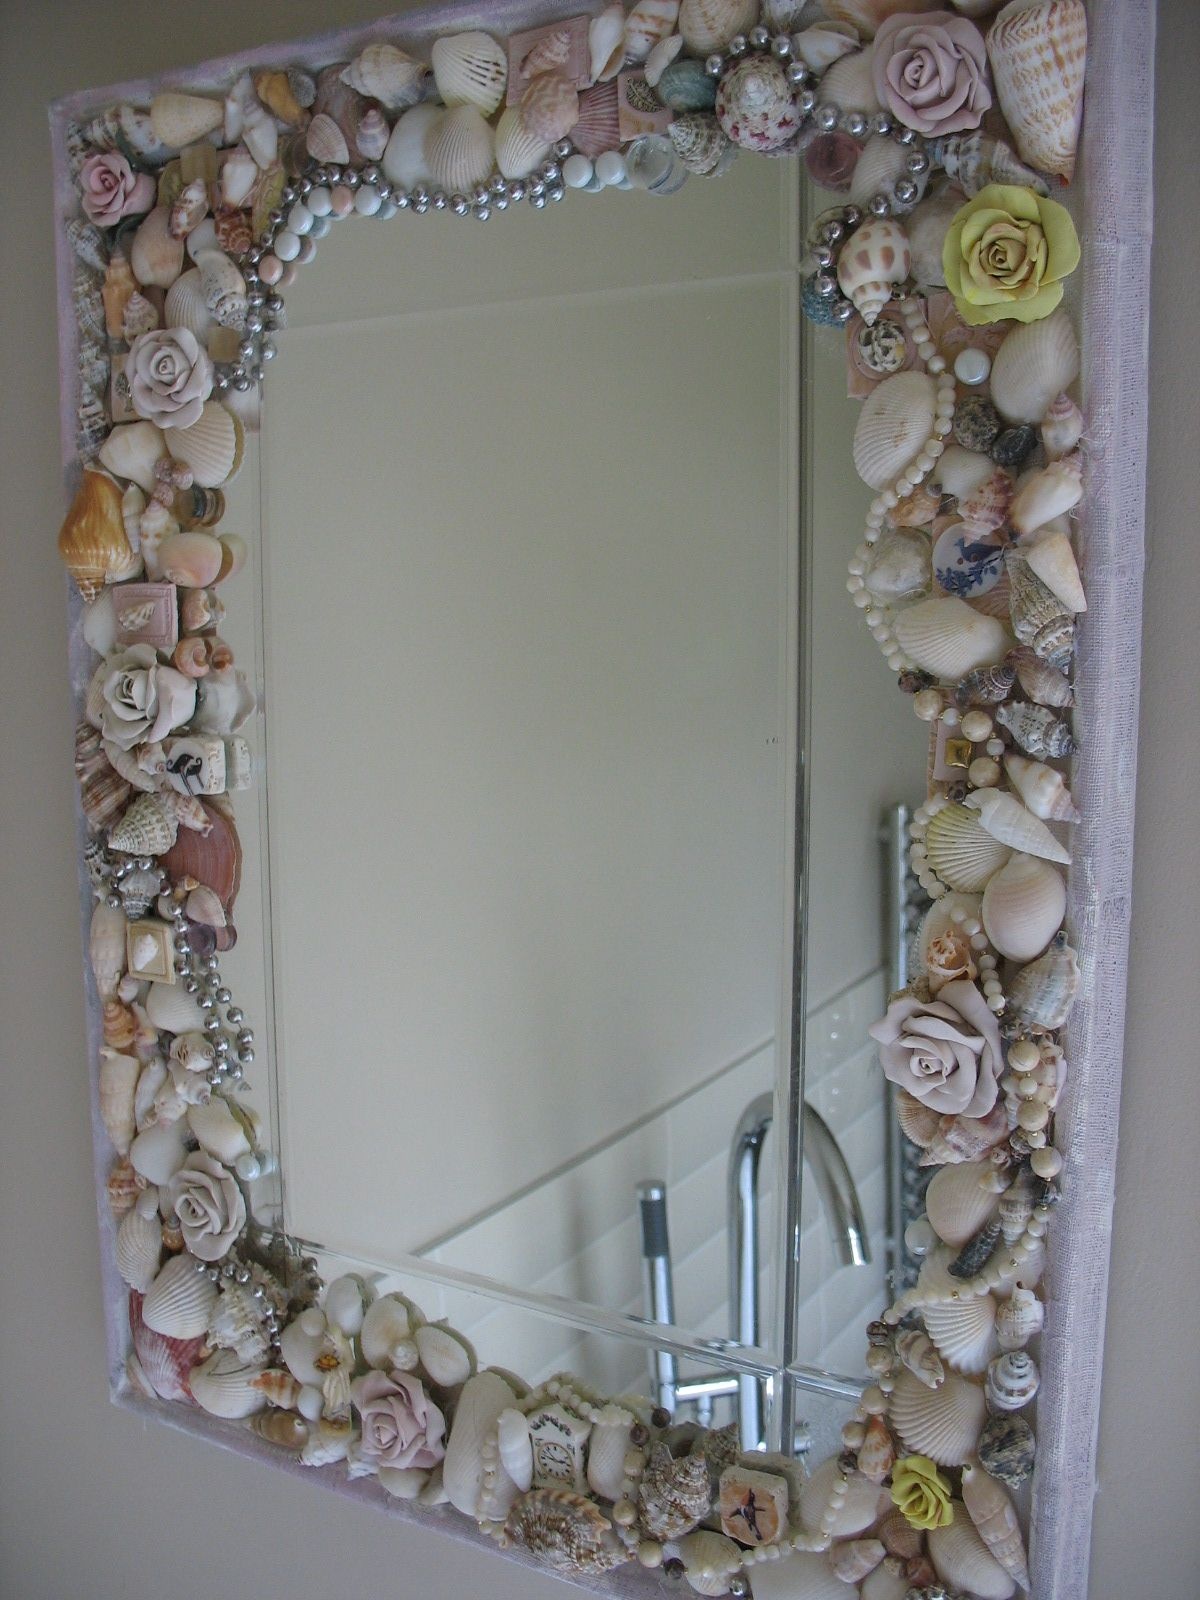 Shell Mirror With Mixed Media Polymer Clay Roses Beads Junk